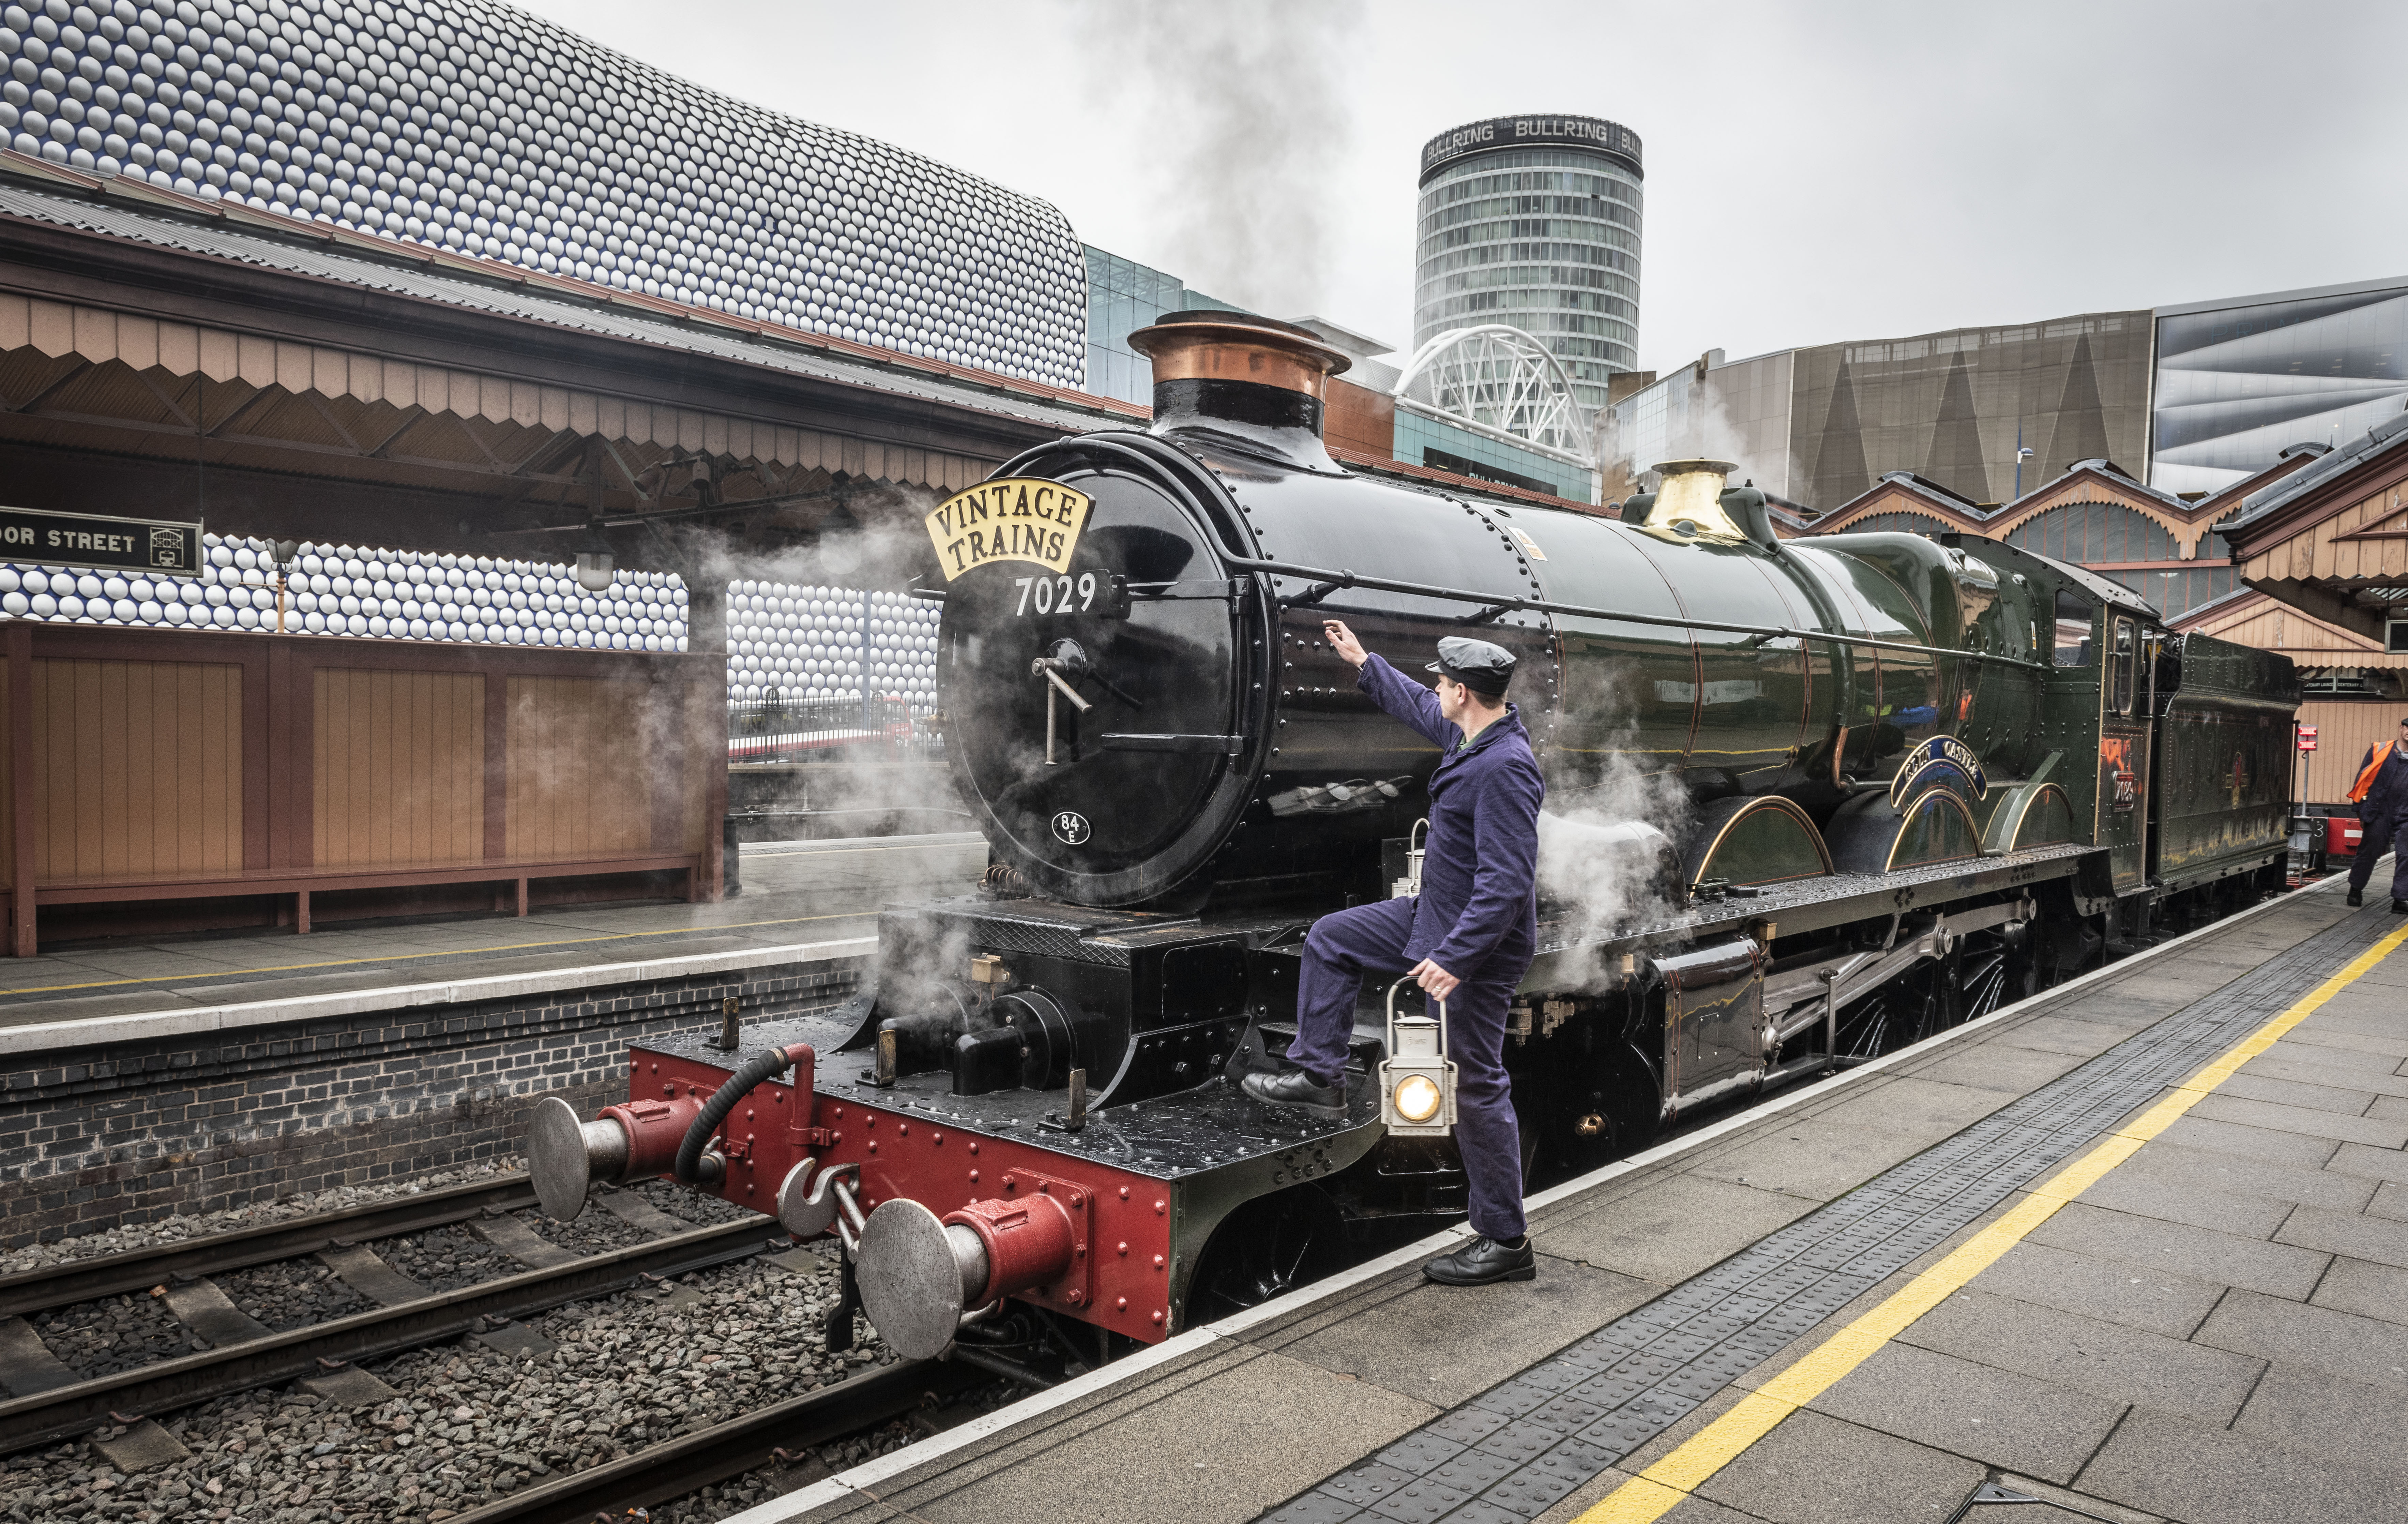 Clun Castle steam engine rolled into Moor Street Station to celebrate new Vintage Trains partnership